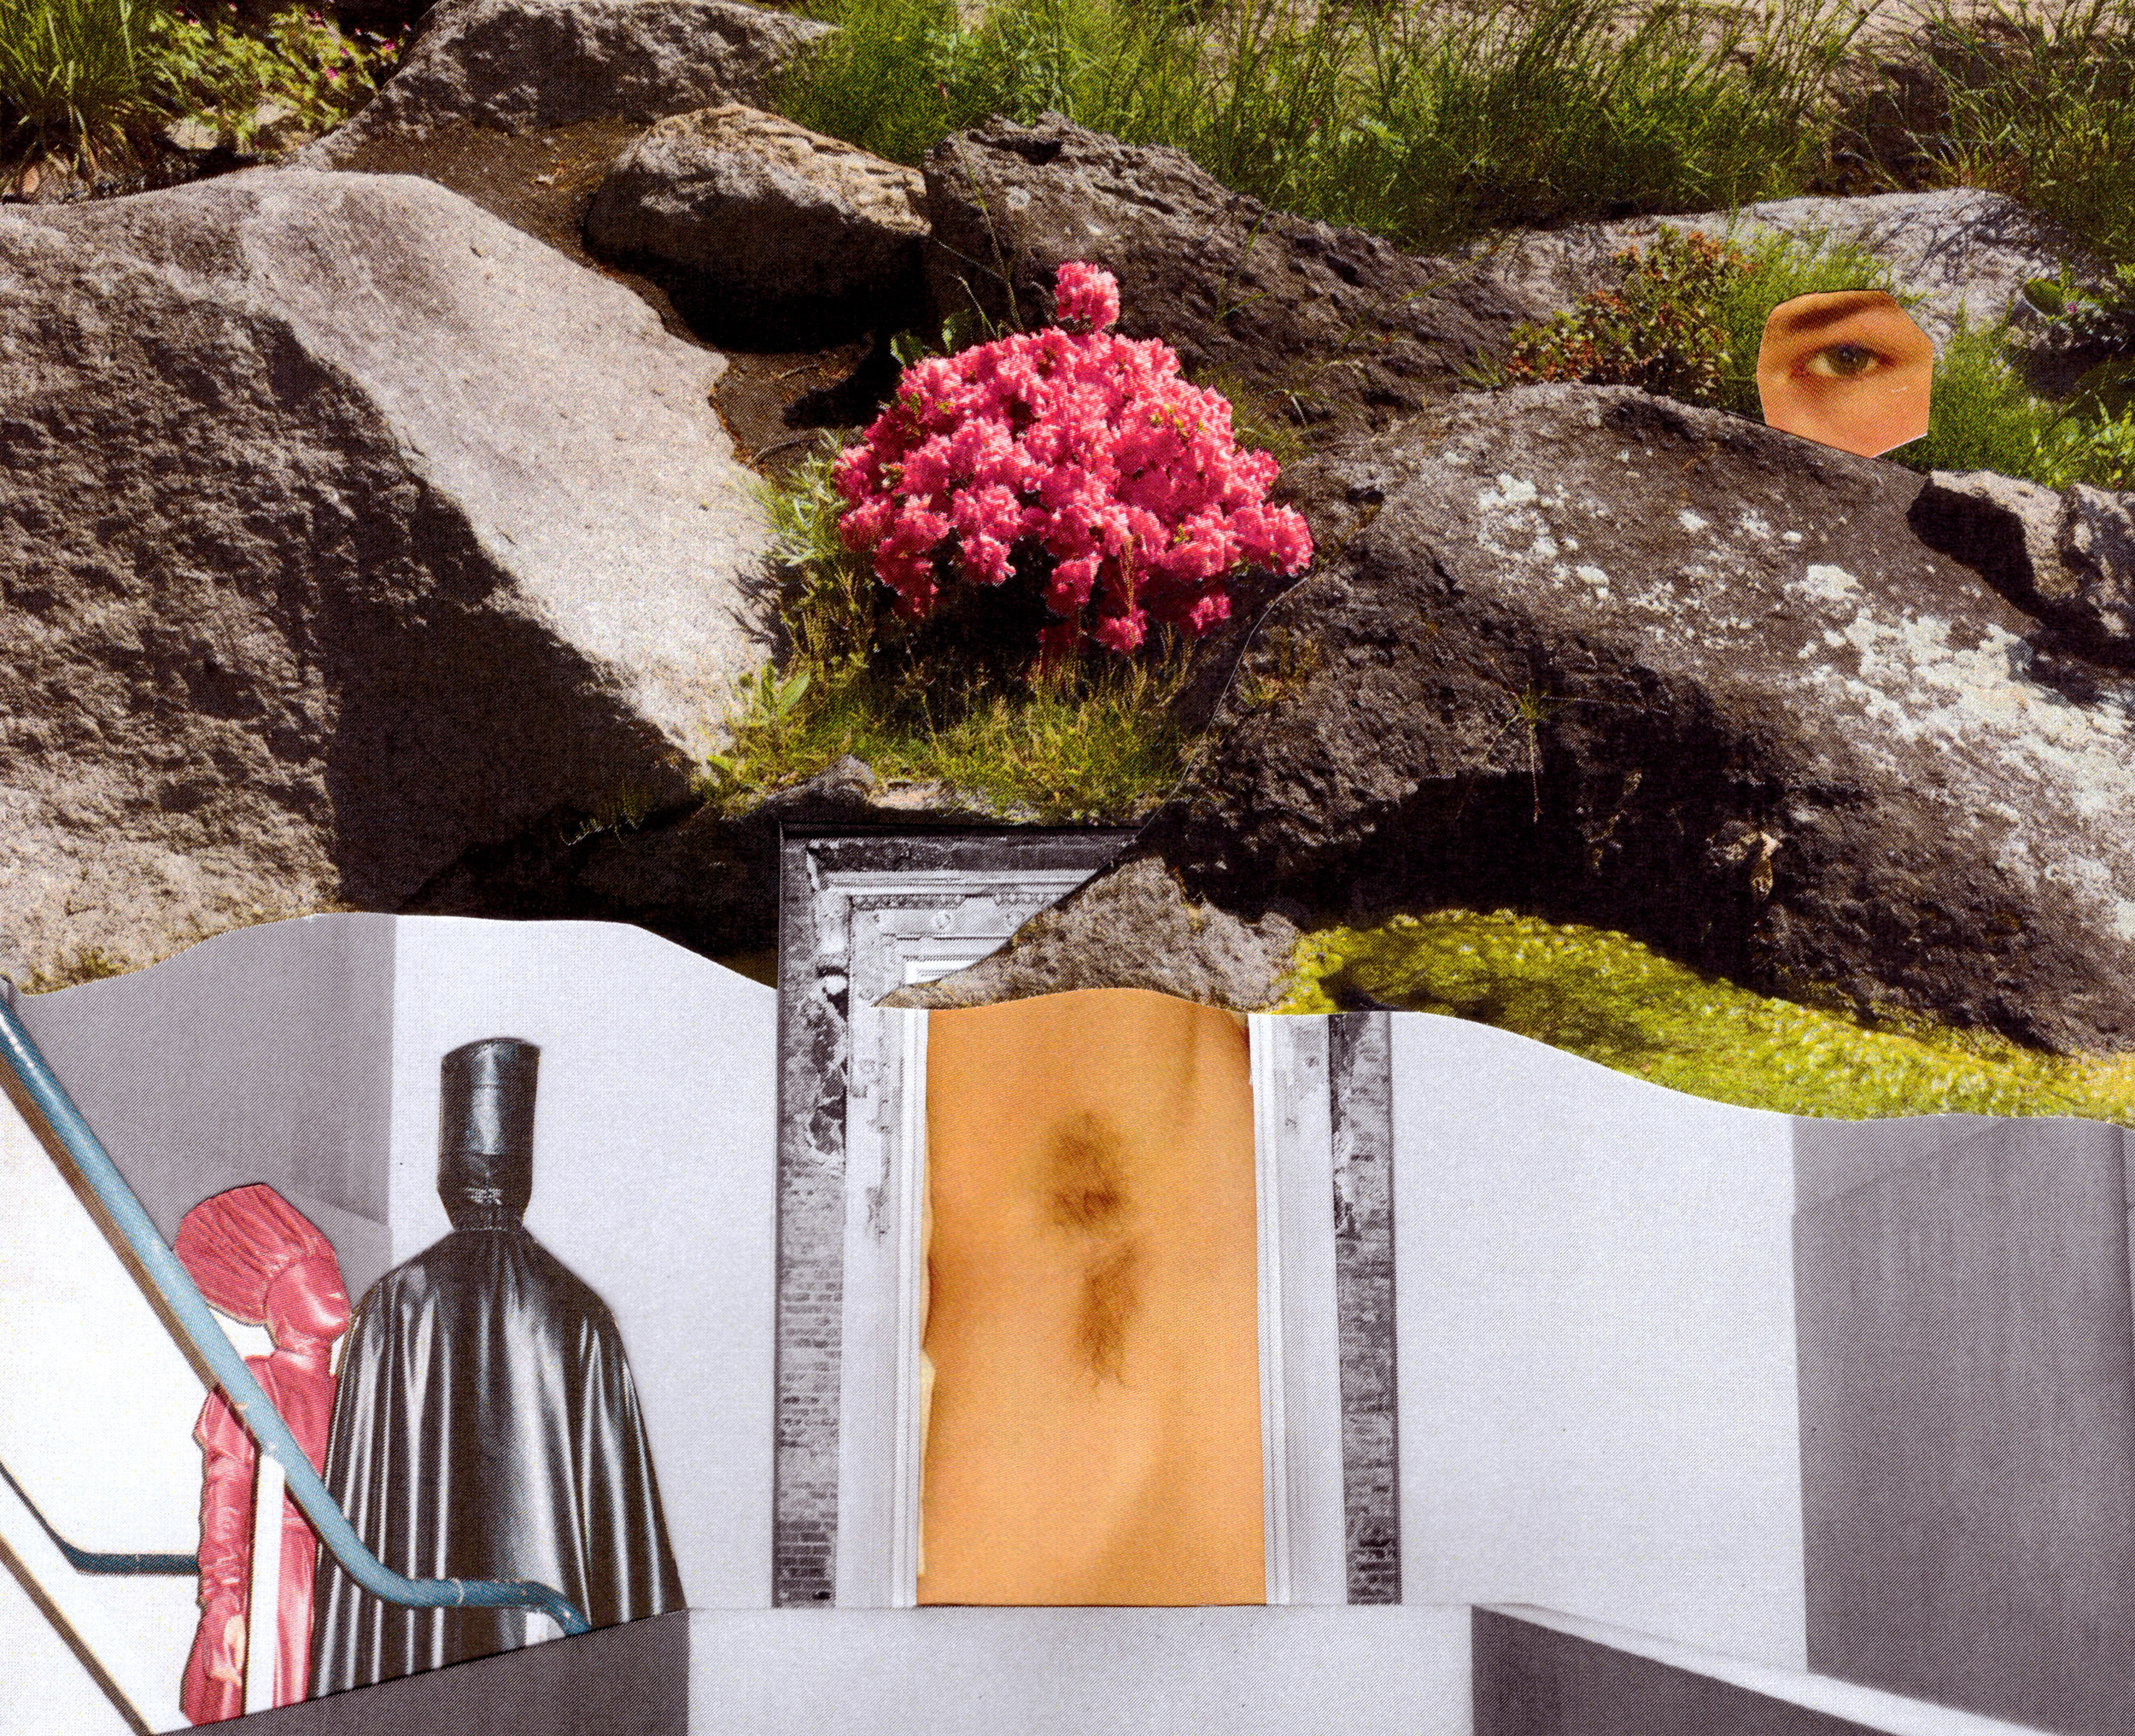 harit-srikhao-midnight-rainbows-uy-intimate-gustav-courbet